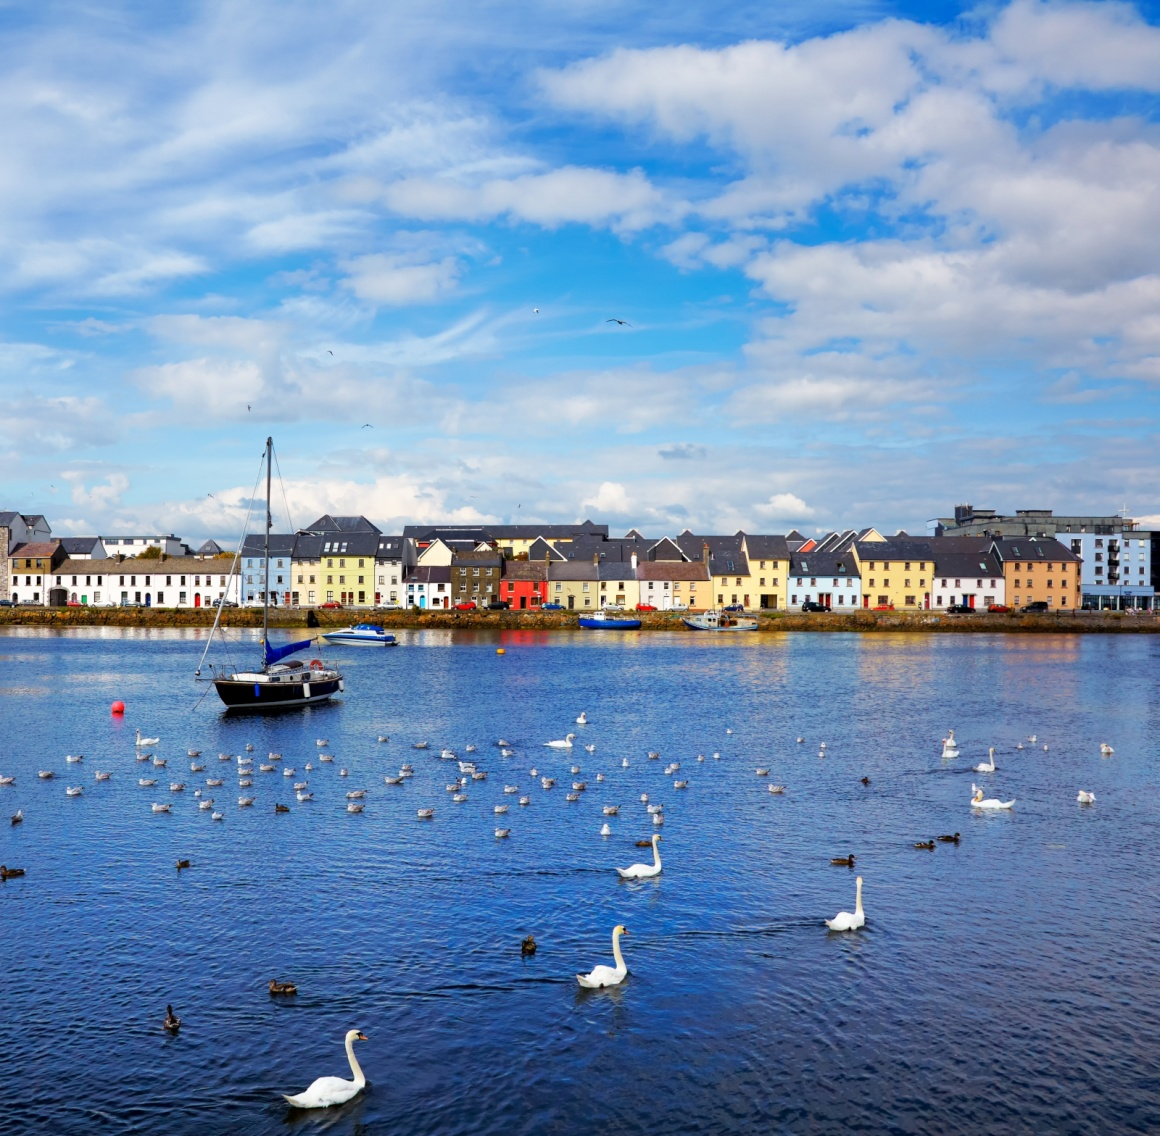 'The Claddagh in Galway city during summertime, Ireland.' - Ireland